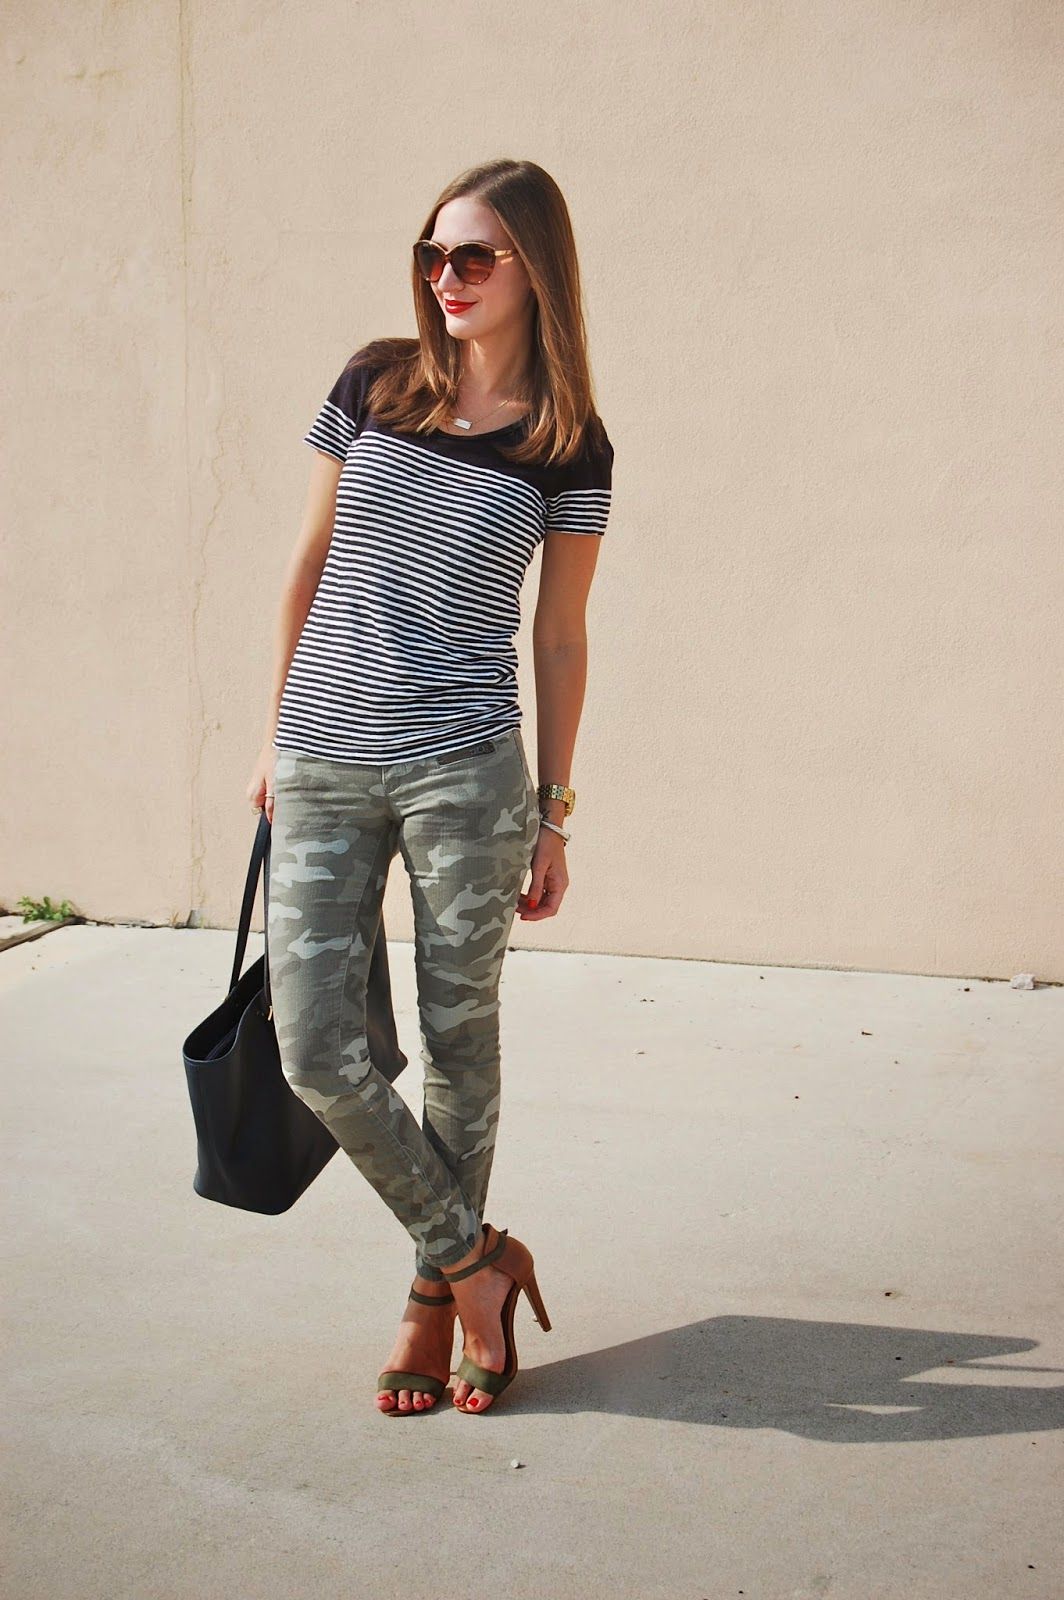 Wearing Stripes and Camouflage. Camo Skinny Jeans, Striped J.Crew Shirt, Prima Donna Two Tone Heels